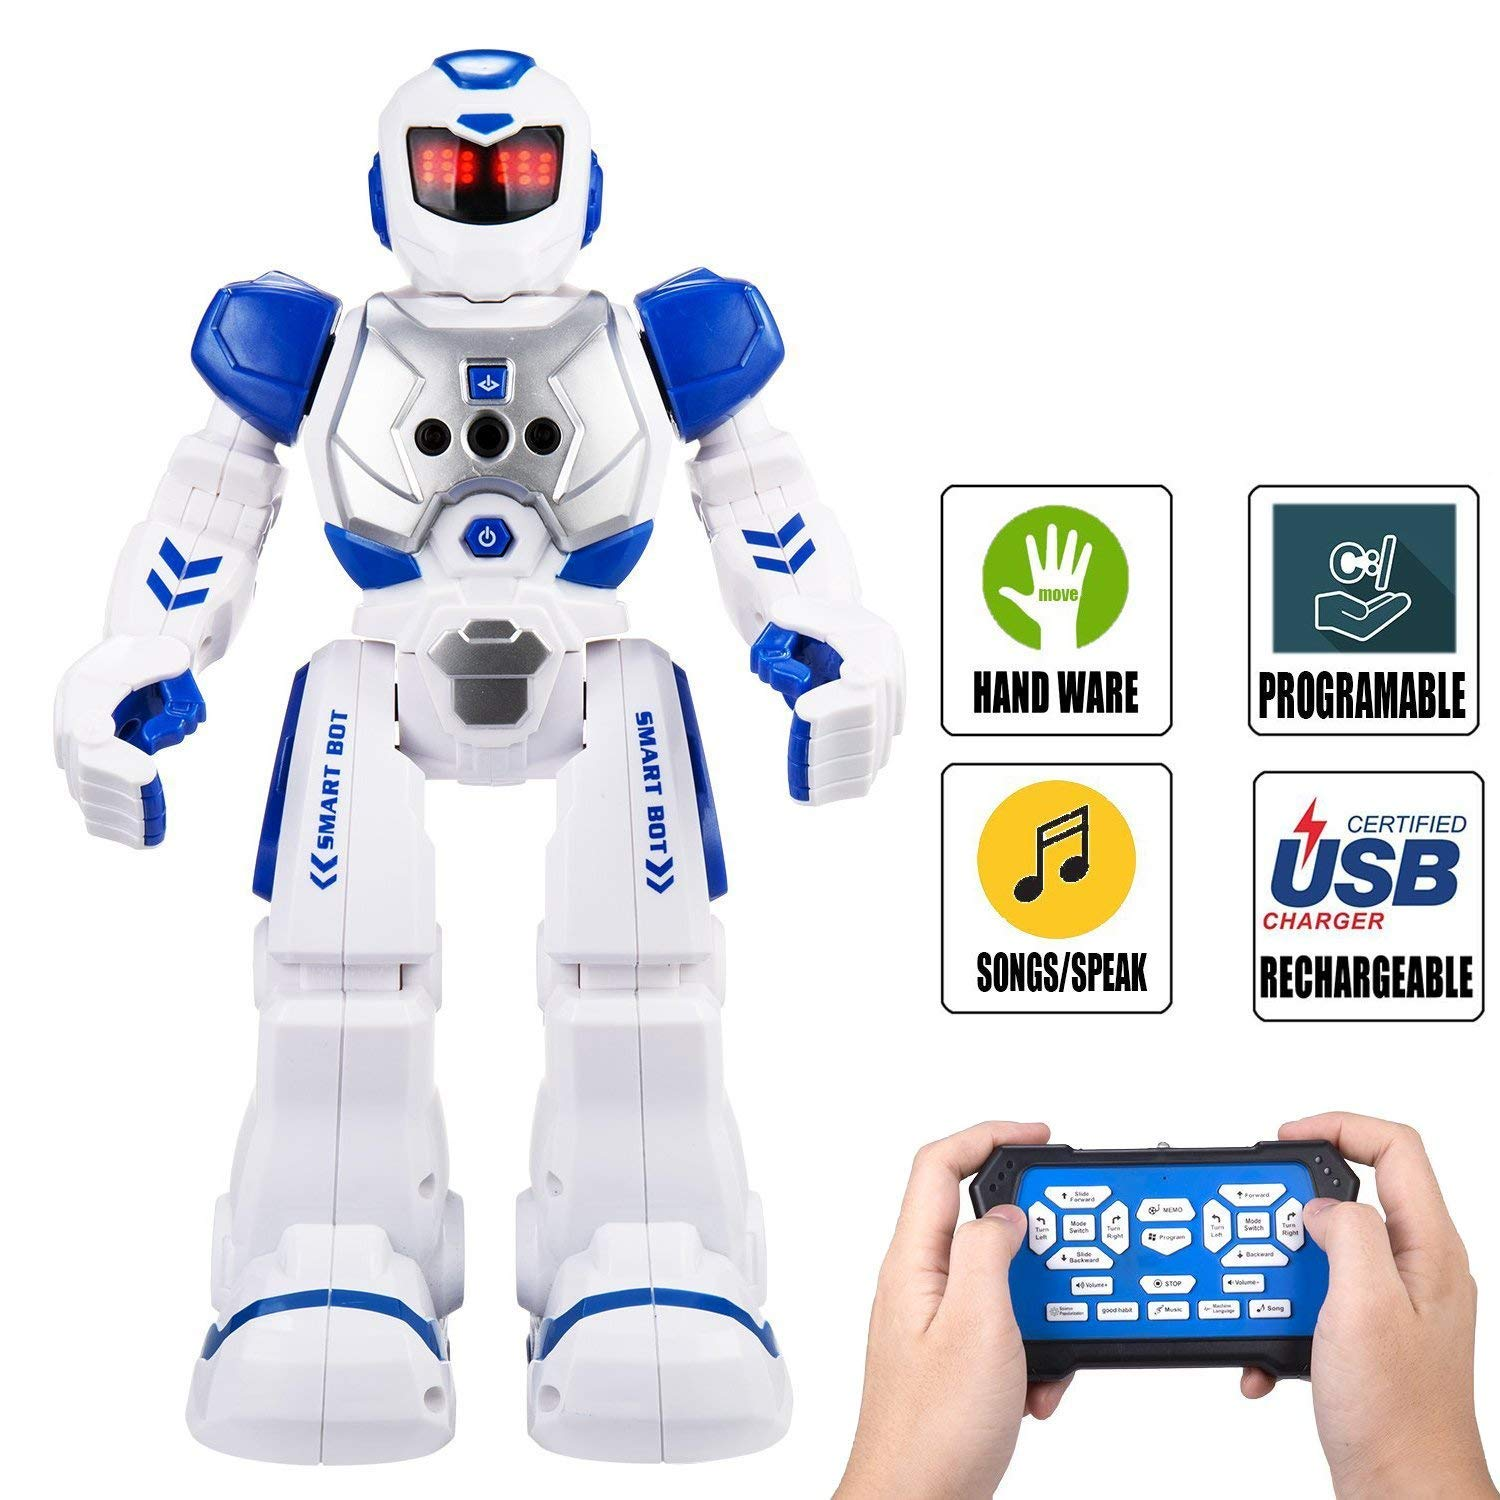 Elemusi Remote Wireless Control Robot for Kids Toys,Smart Robots with Singing,Dancing,Gesture Sensing Entertainment Robotics for Children (Blue) by Elemusi (Image #1)